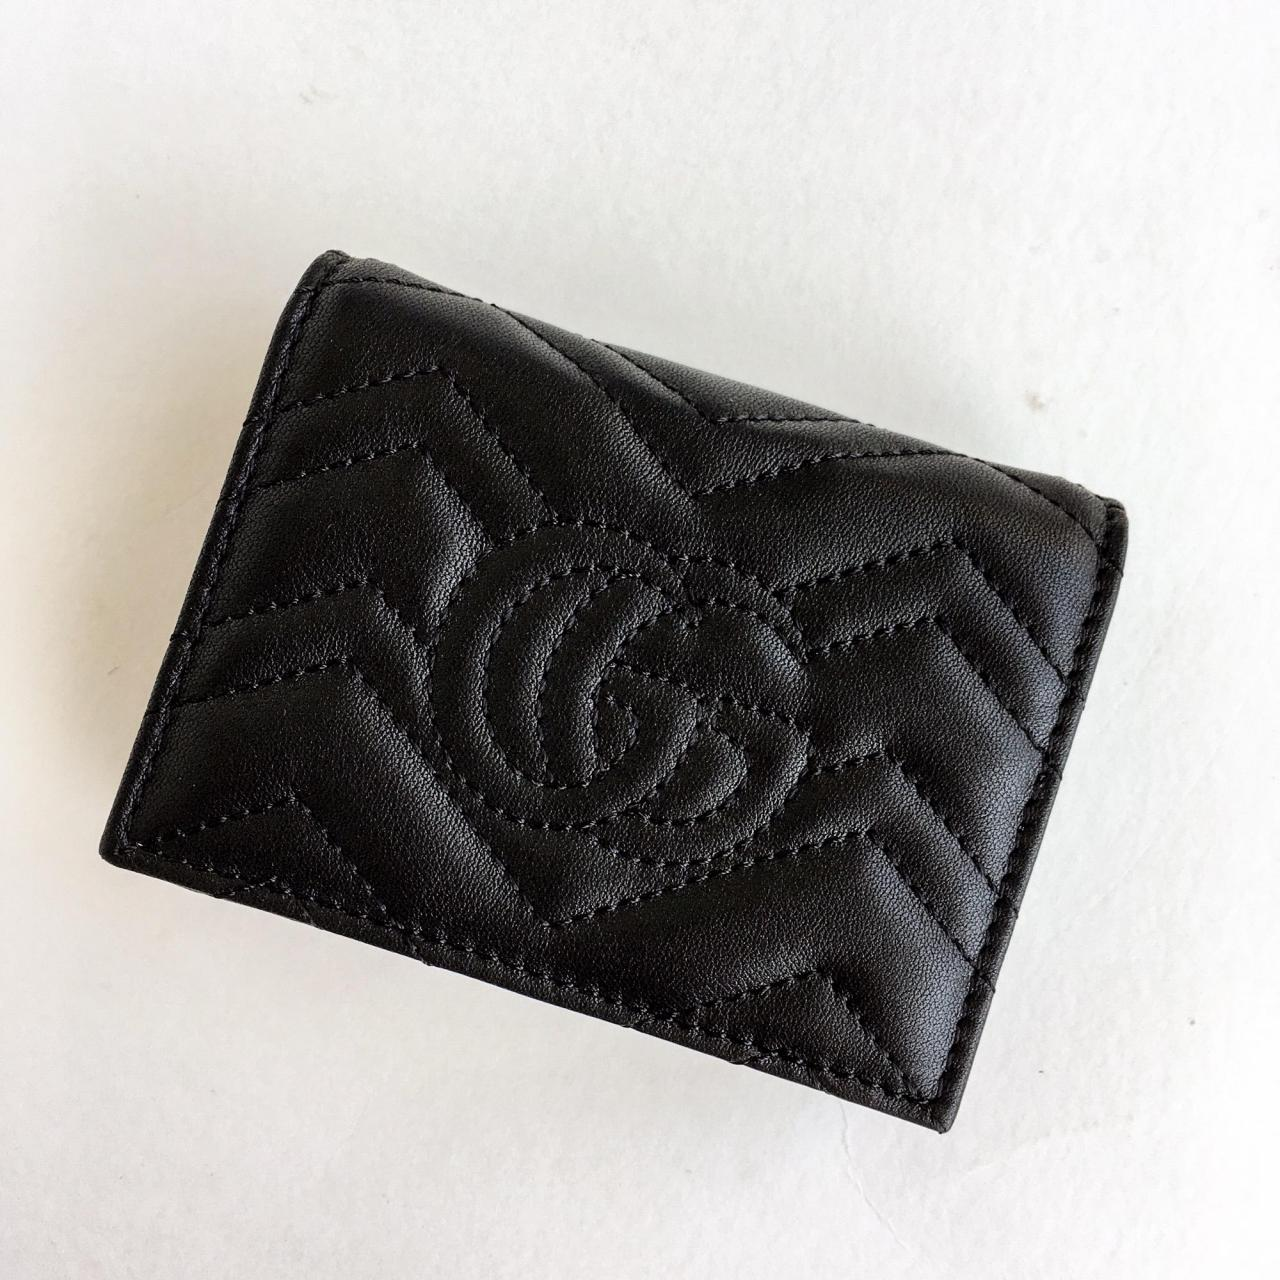 98c21e044ed8 What's the perfect Gucci wallet you're looking for? Is it a truly unique  kind or something you can not find? We've got a huge assortment of first  Gucci ...